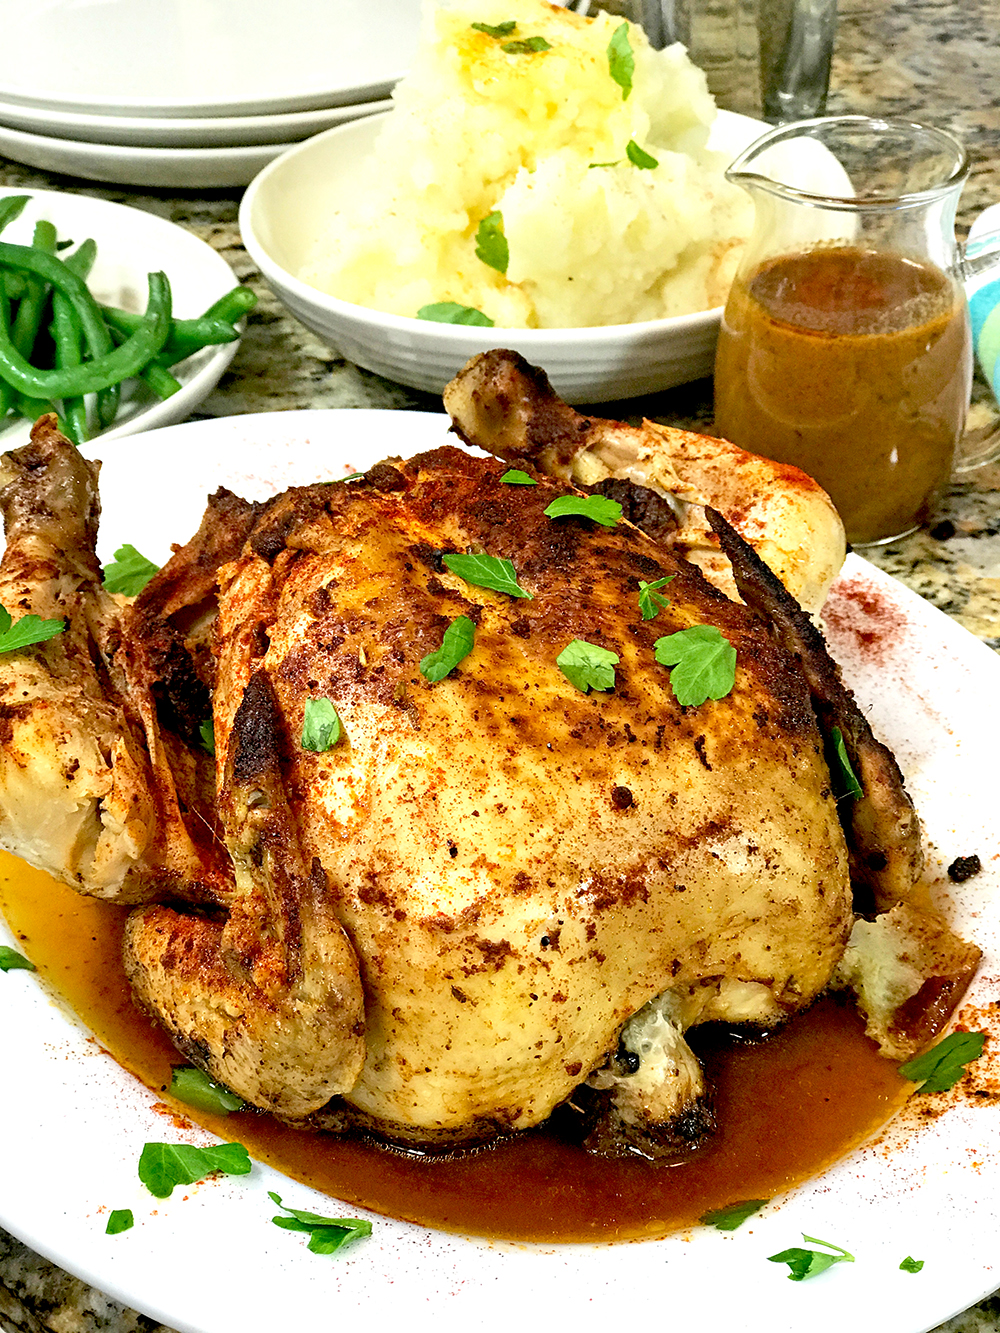 Whole Chicken Pressure Cooier Recipe using the instant pot